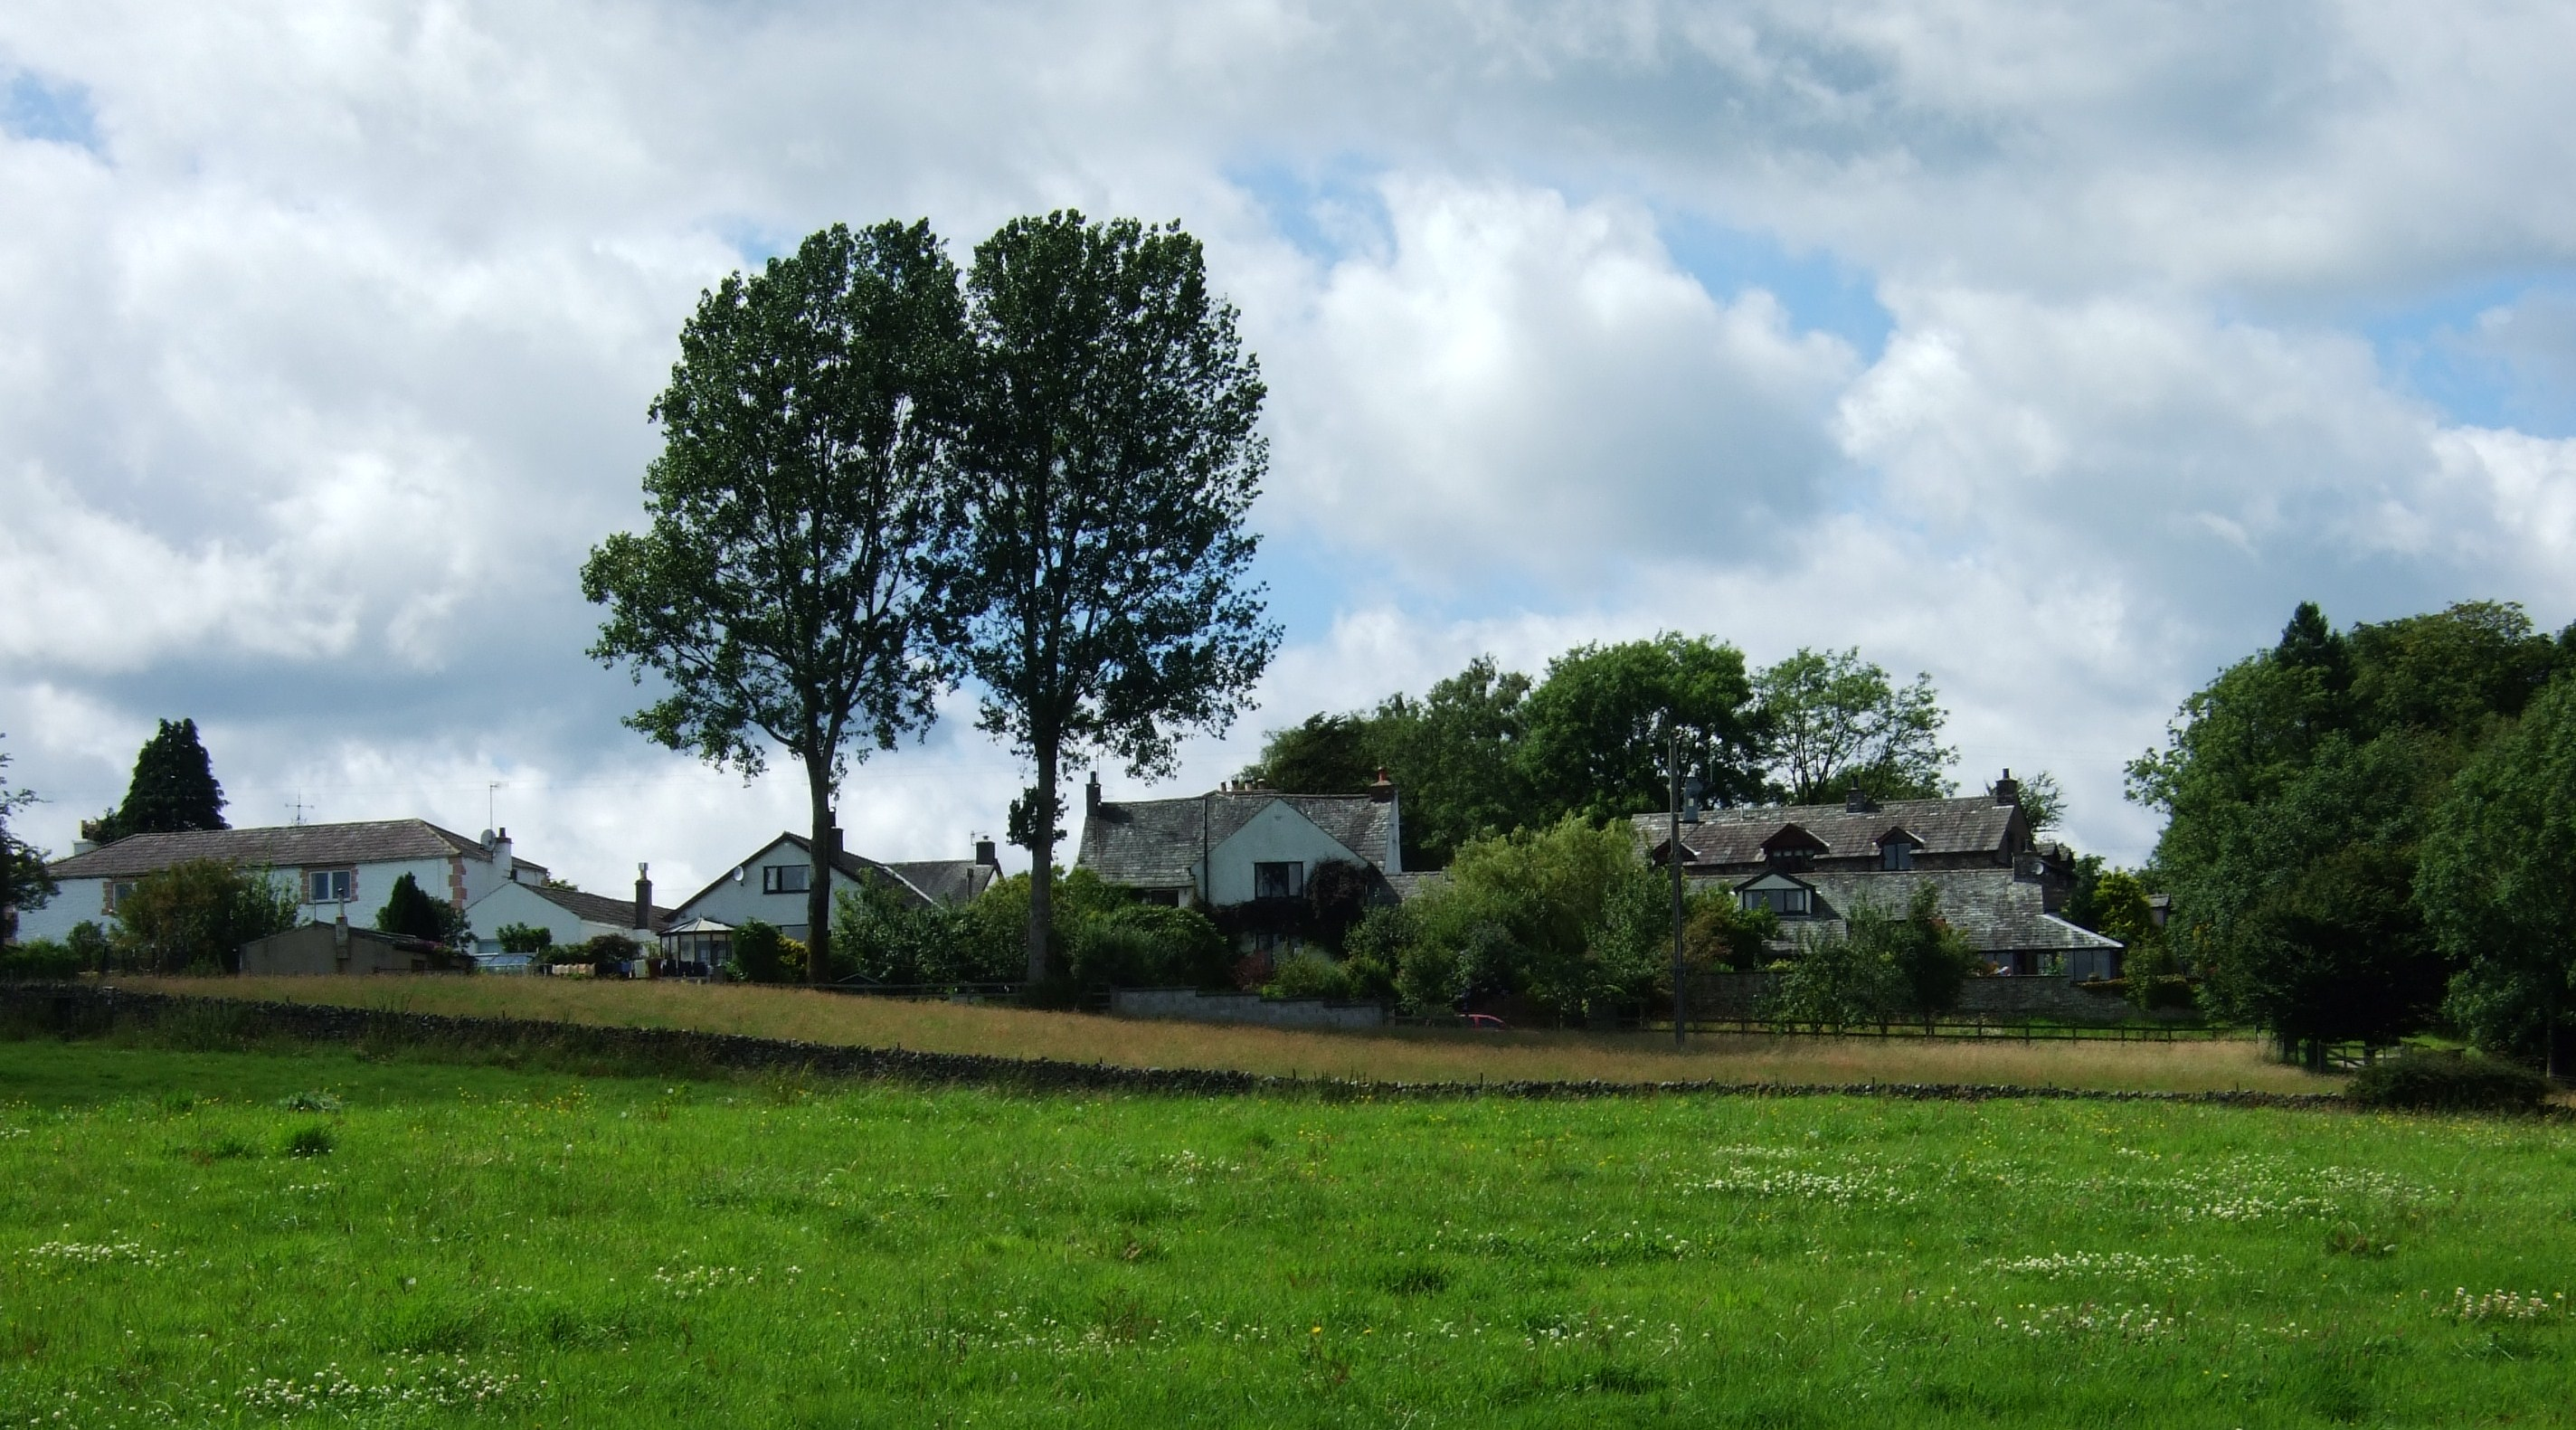 Prizet houses and fields